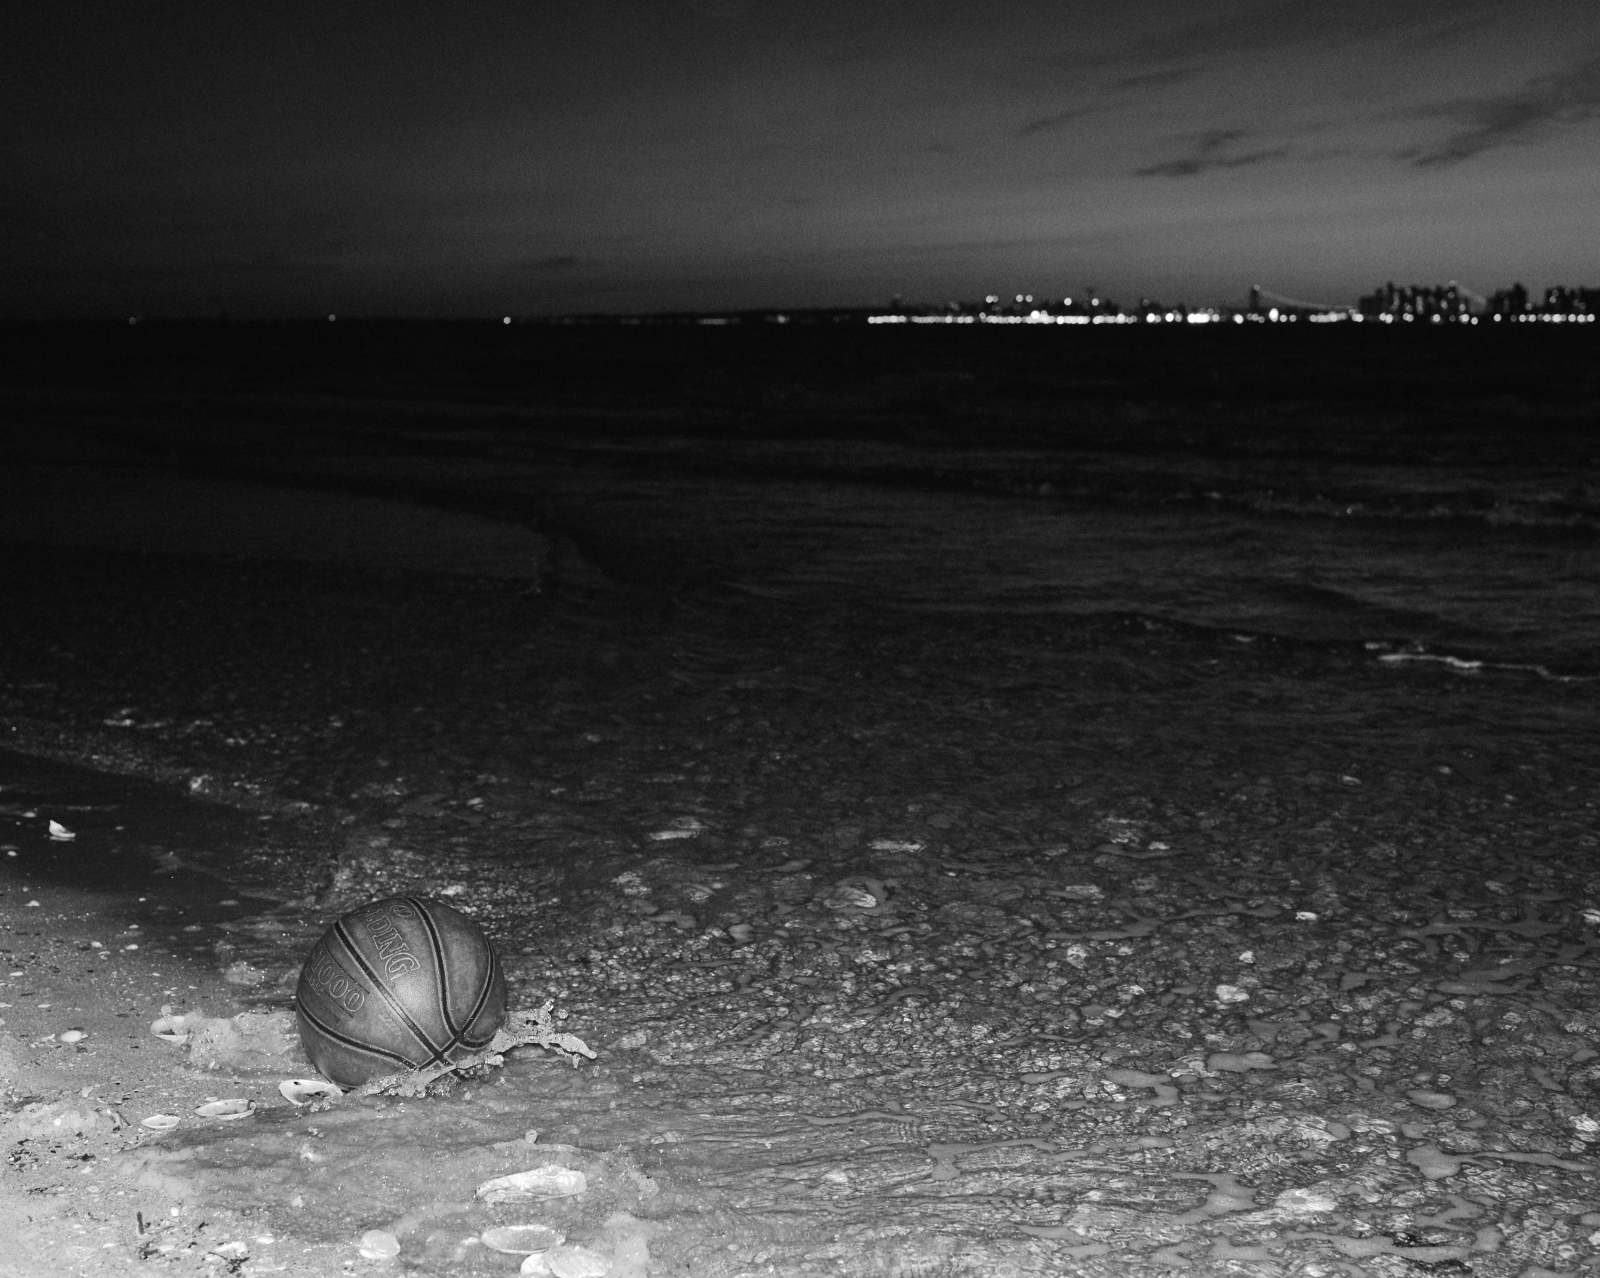 A castaway basketball floats on the shore of 'Breezy Point' in the western side of Rockaway beach, with a view to Fort Hamilton area in Brooklyn.